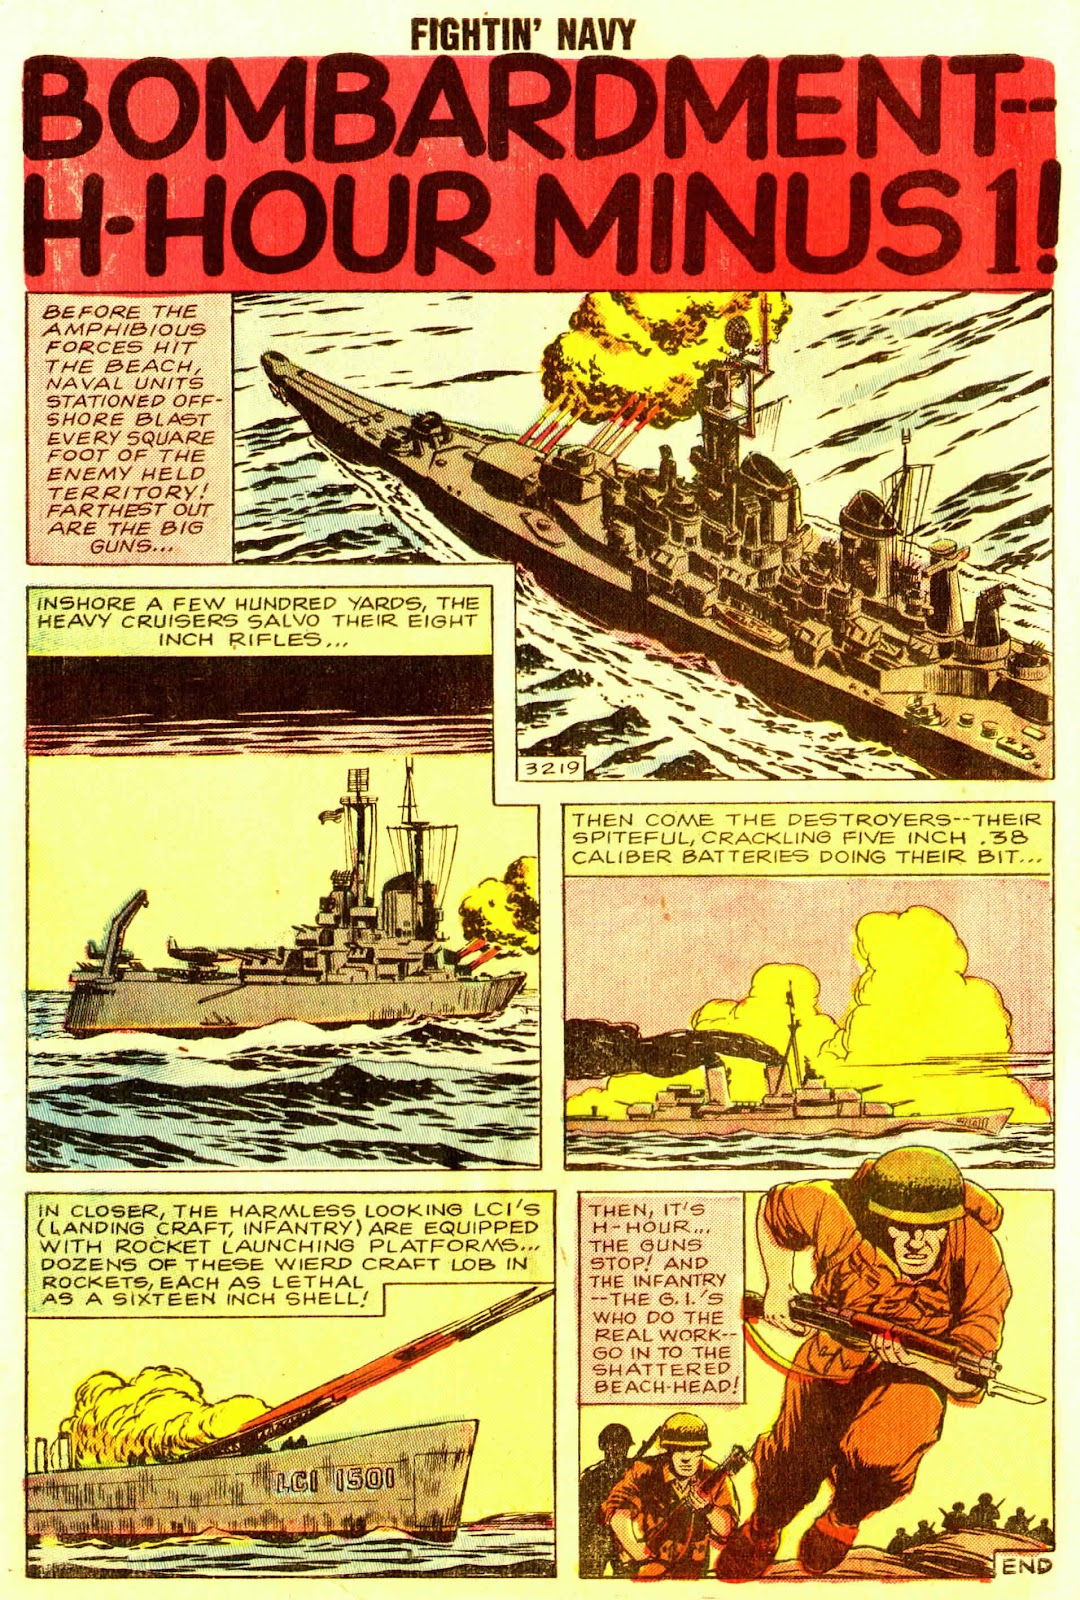 Read online Fightin' Navy comic -  Issue #83 - 74